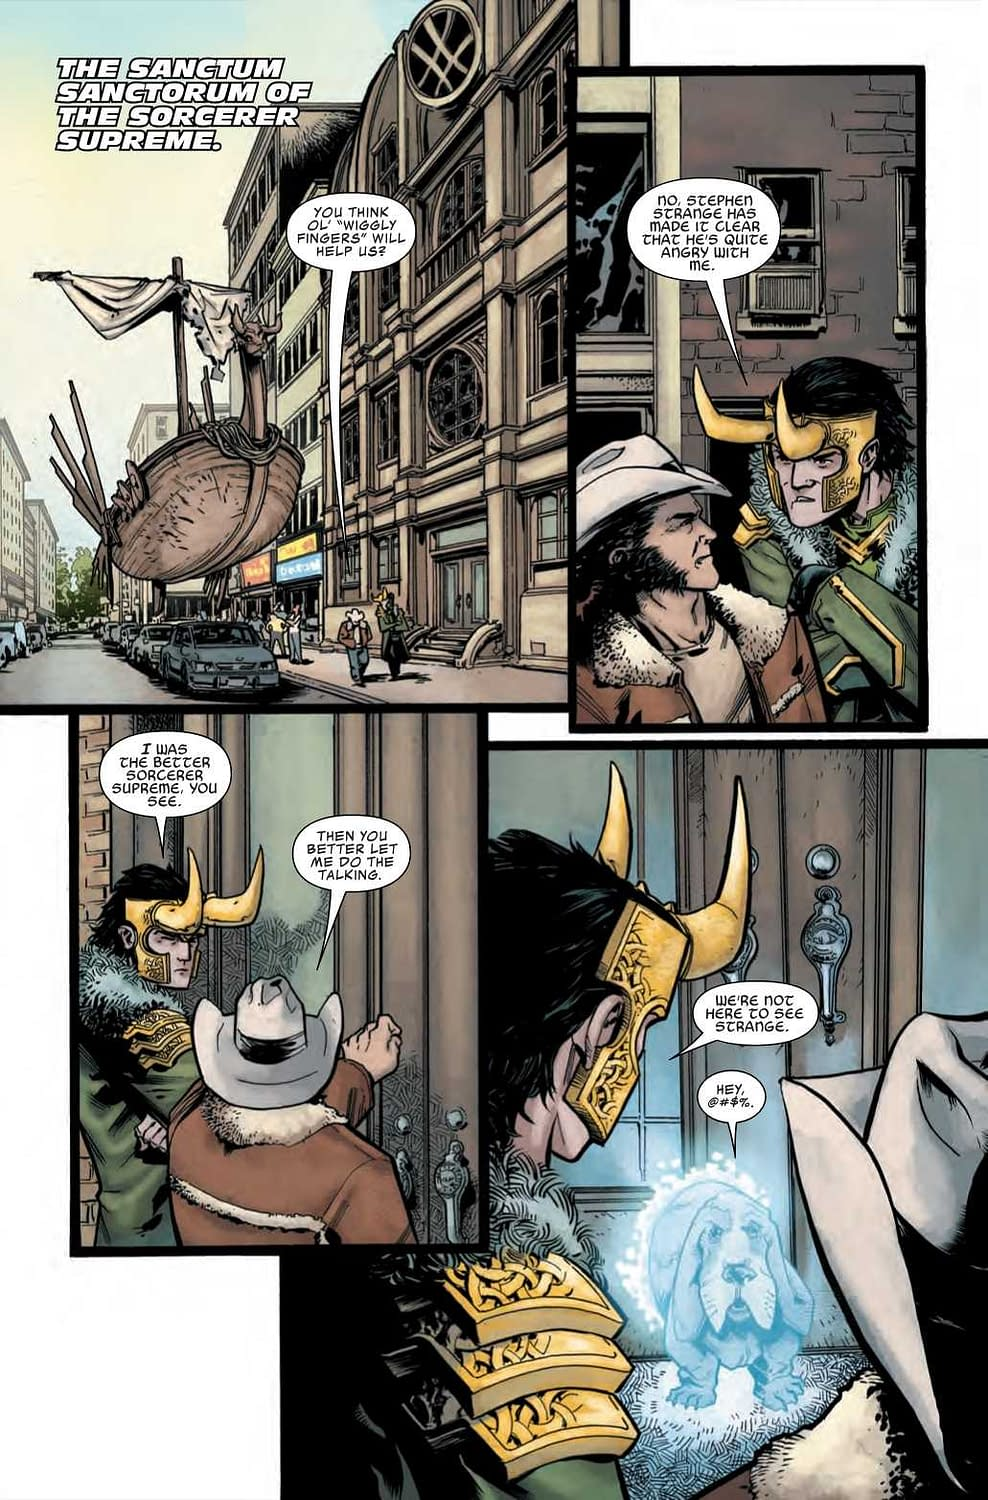 Can Wolverine Drive a Space-Boat While Intoxicated? Wolverine Infinity Watch #3 Preview